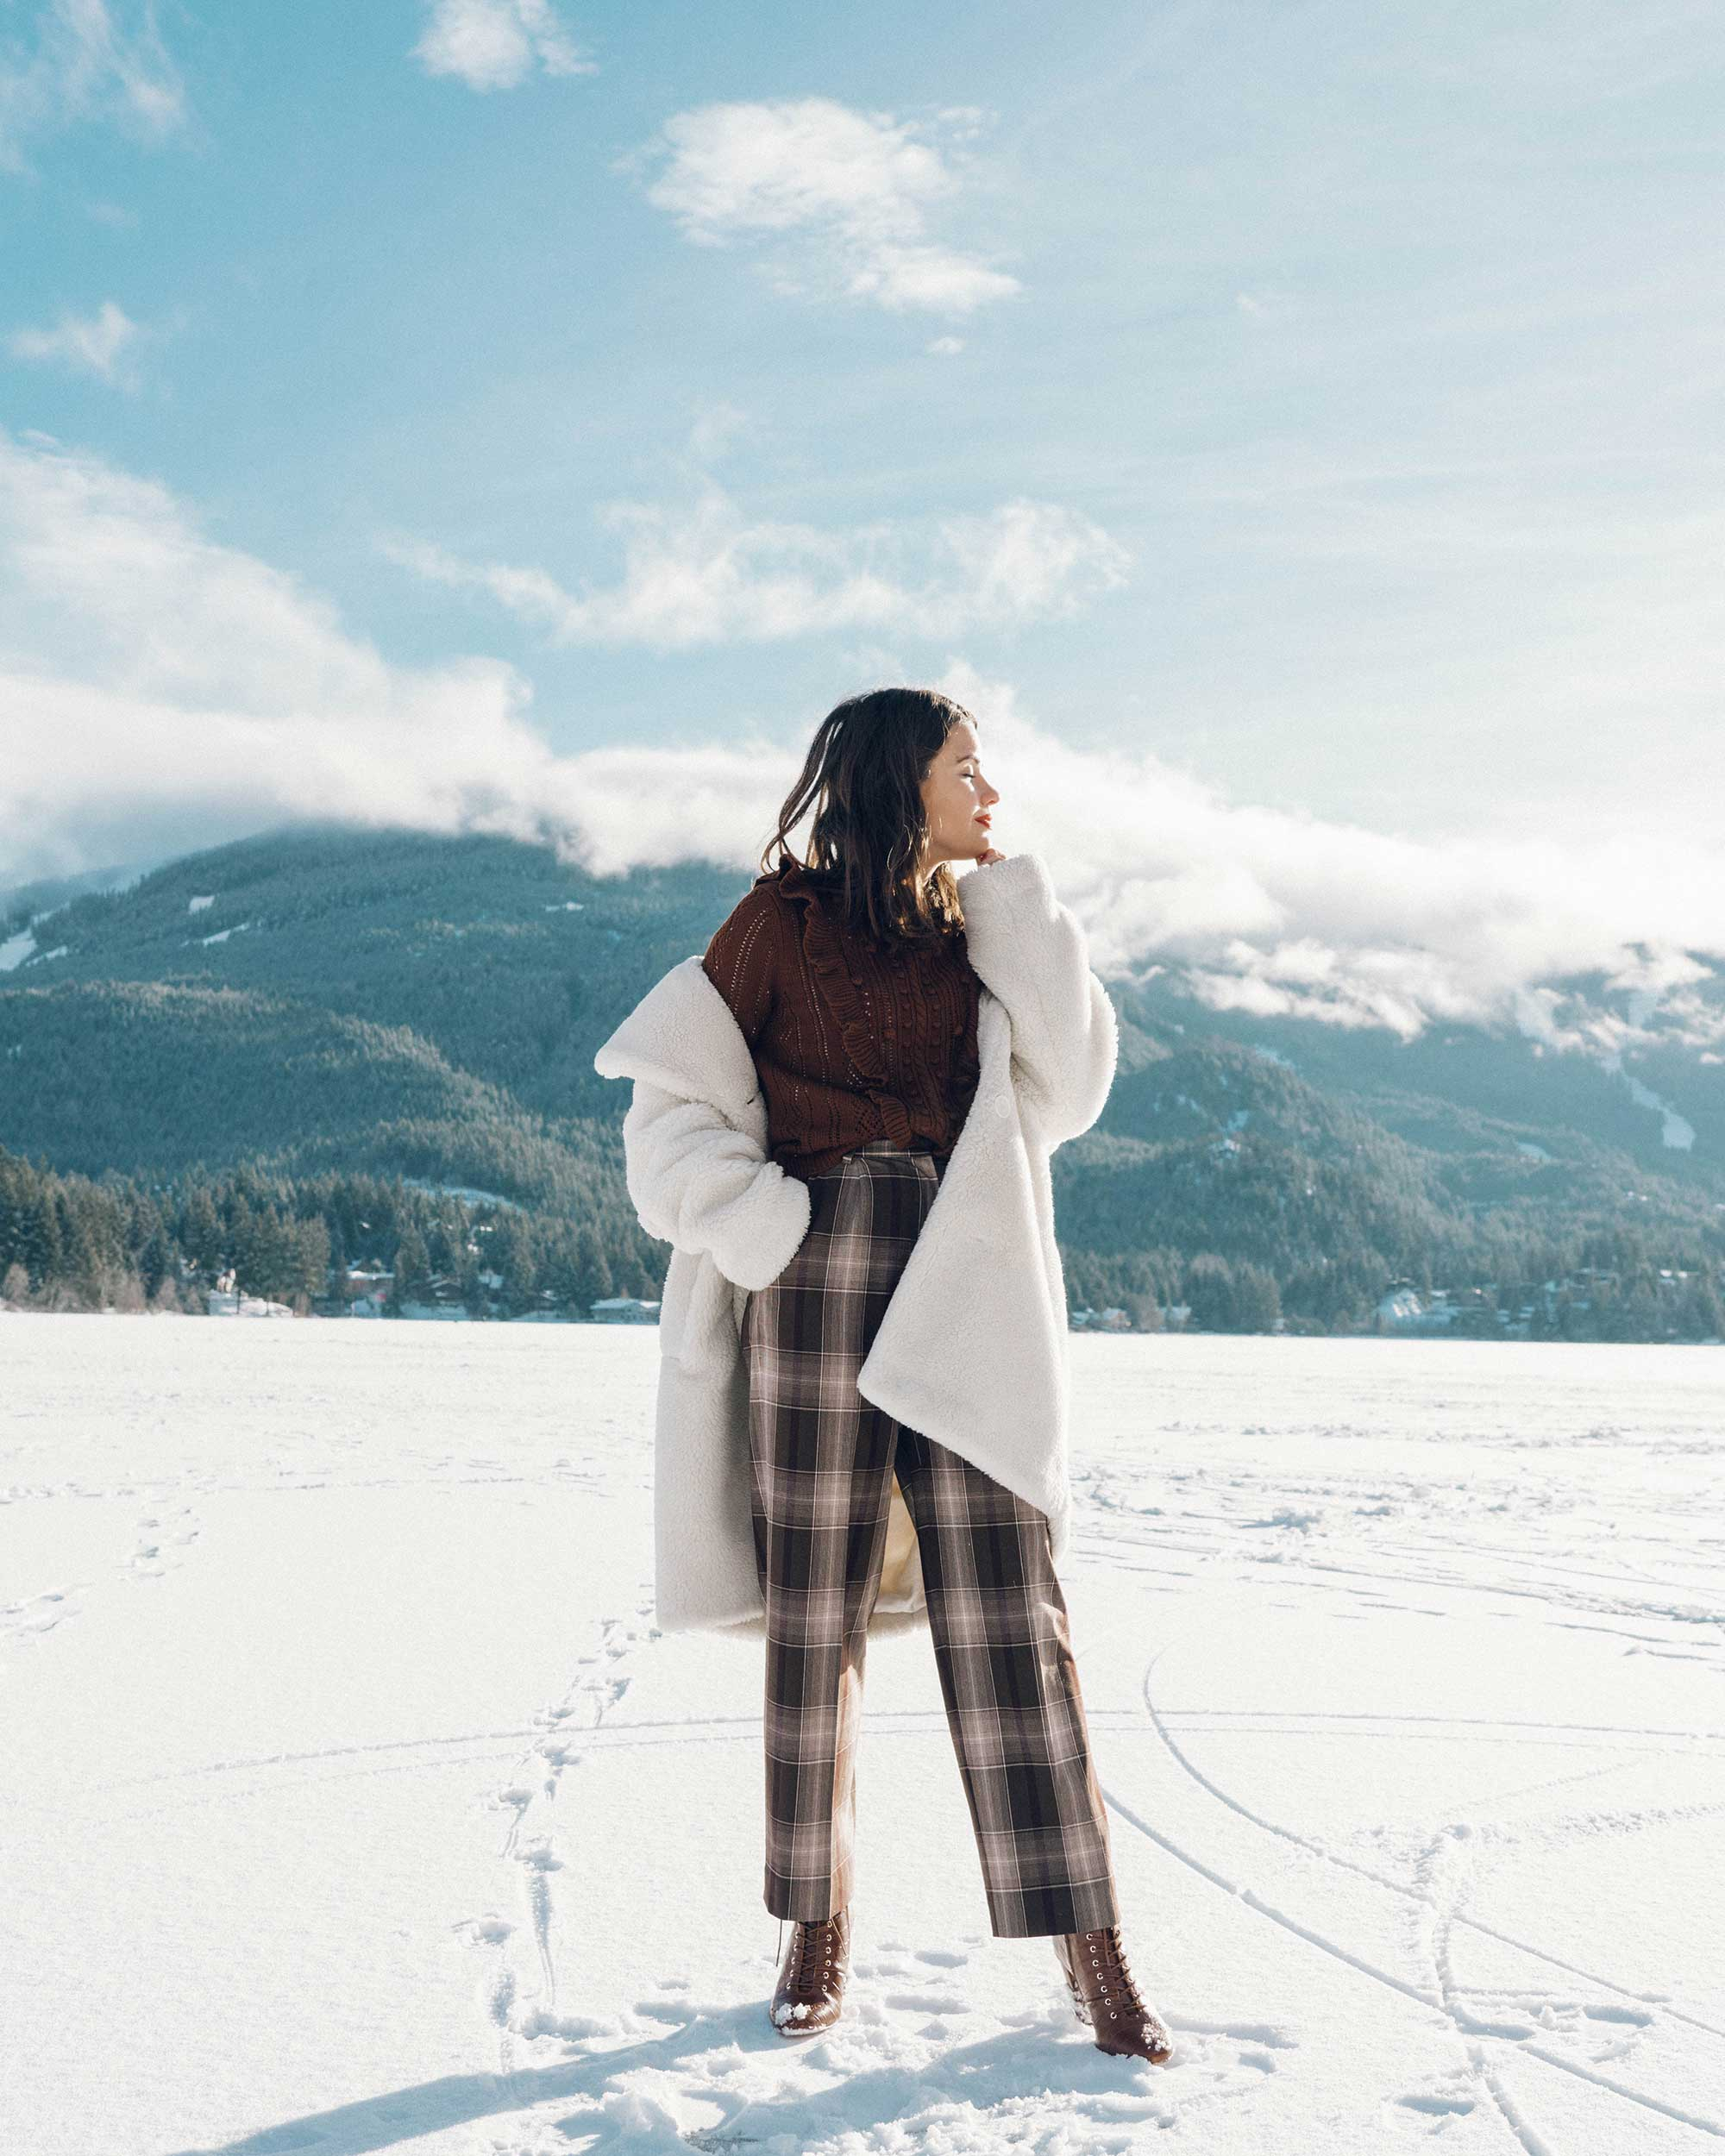 & Other Stories Tailored Brown Plaid Pants with pleats, white Faux Shearling Coat,  winter snow outfit, whistler canada6.jpg